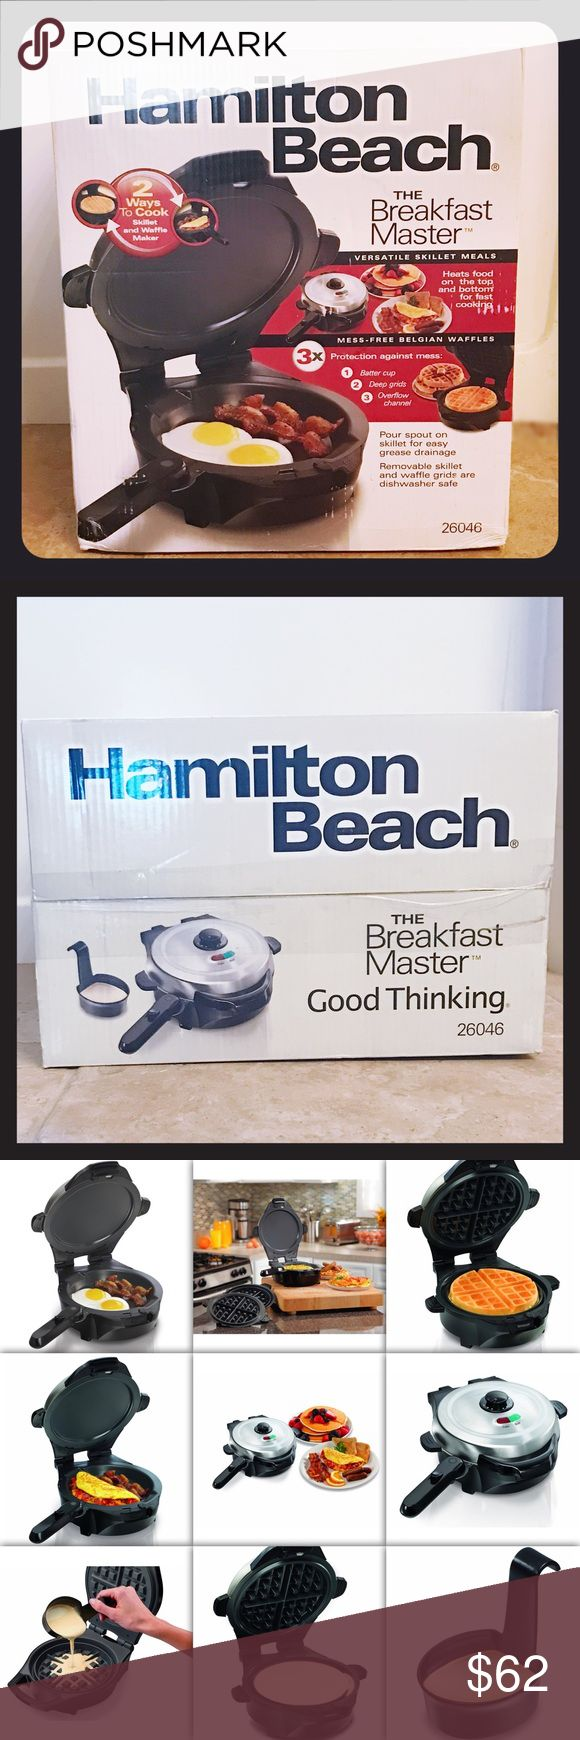 NEW Hamilton Beach 26046 The Breakfast Master NEW / NEVER OPENED Hamilton Beach 26046 The Breakfast Master Skillet and Waffle Maker  2 ways to cook Versatile skillet meals - heats food on the top and bottom for fast cooking Pour spout on skillet for easy grease drainage Removable skillet and waffle grids are dishwasher safe Adjustable browning hamilton beach Other